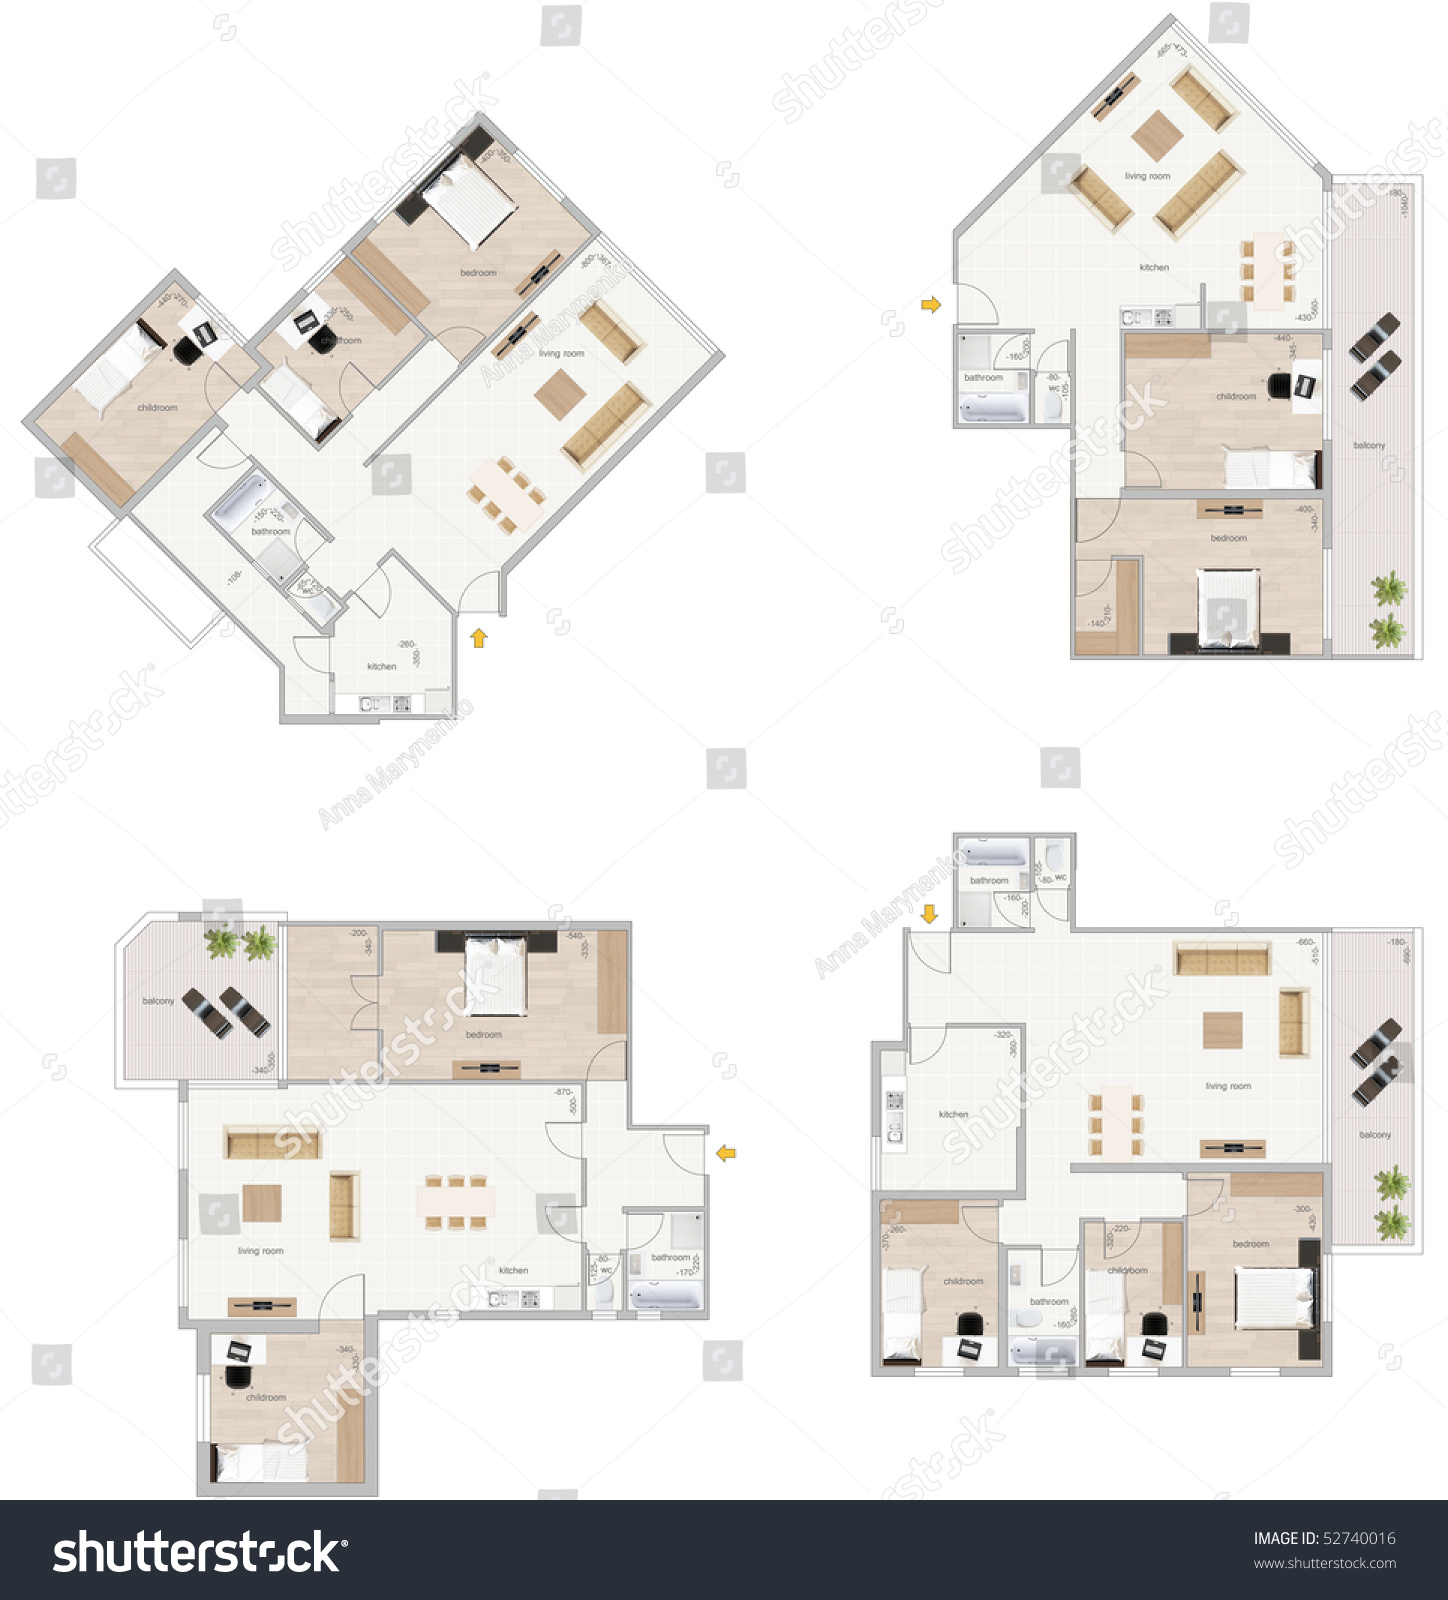 Floor Plan With Furniture And Sizes Of Rooms High